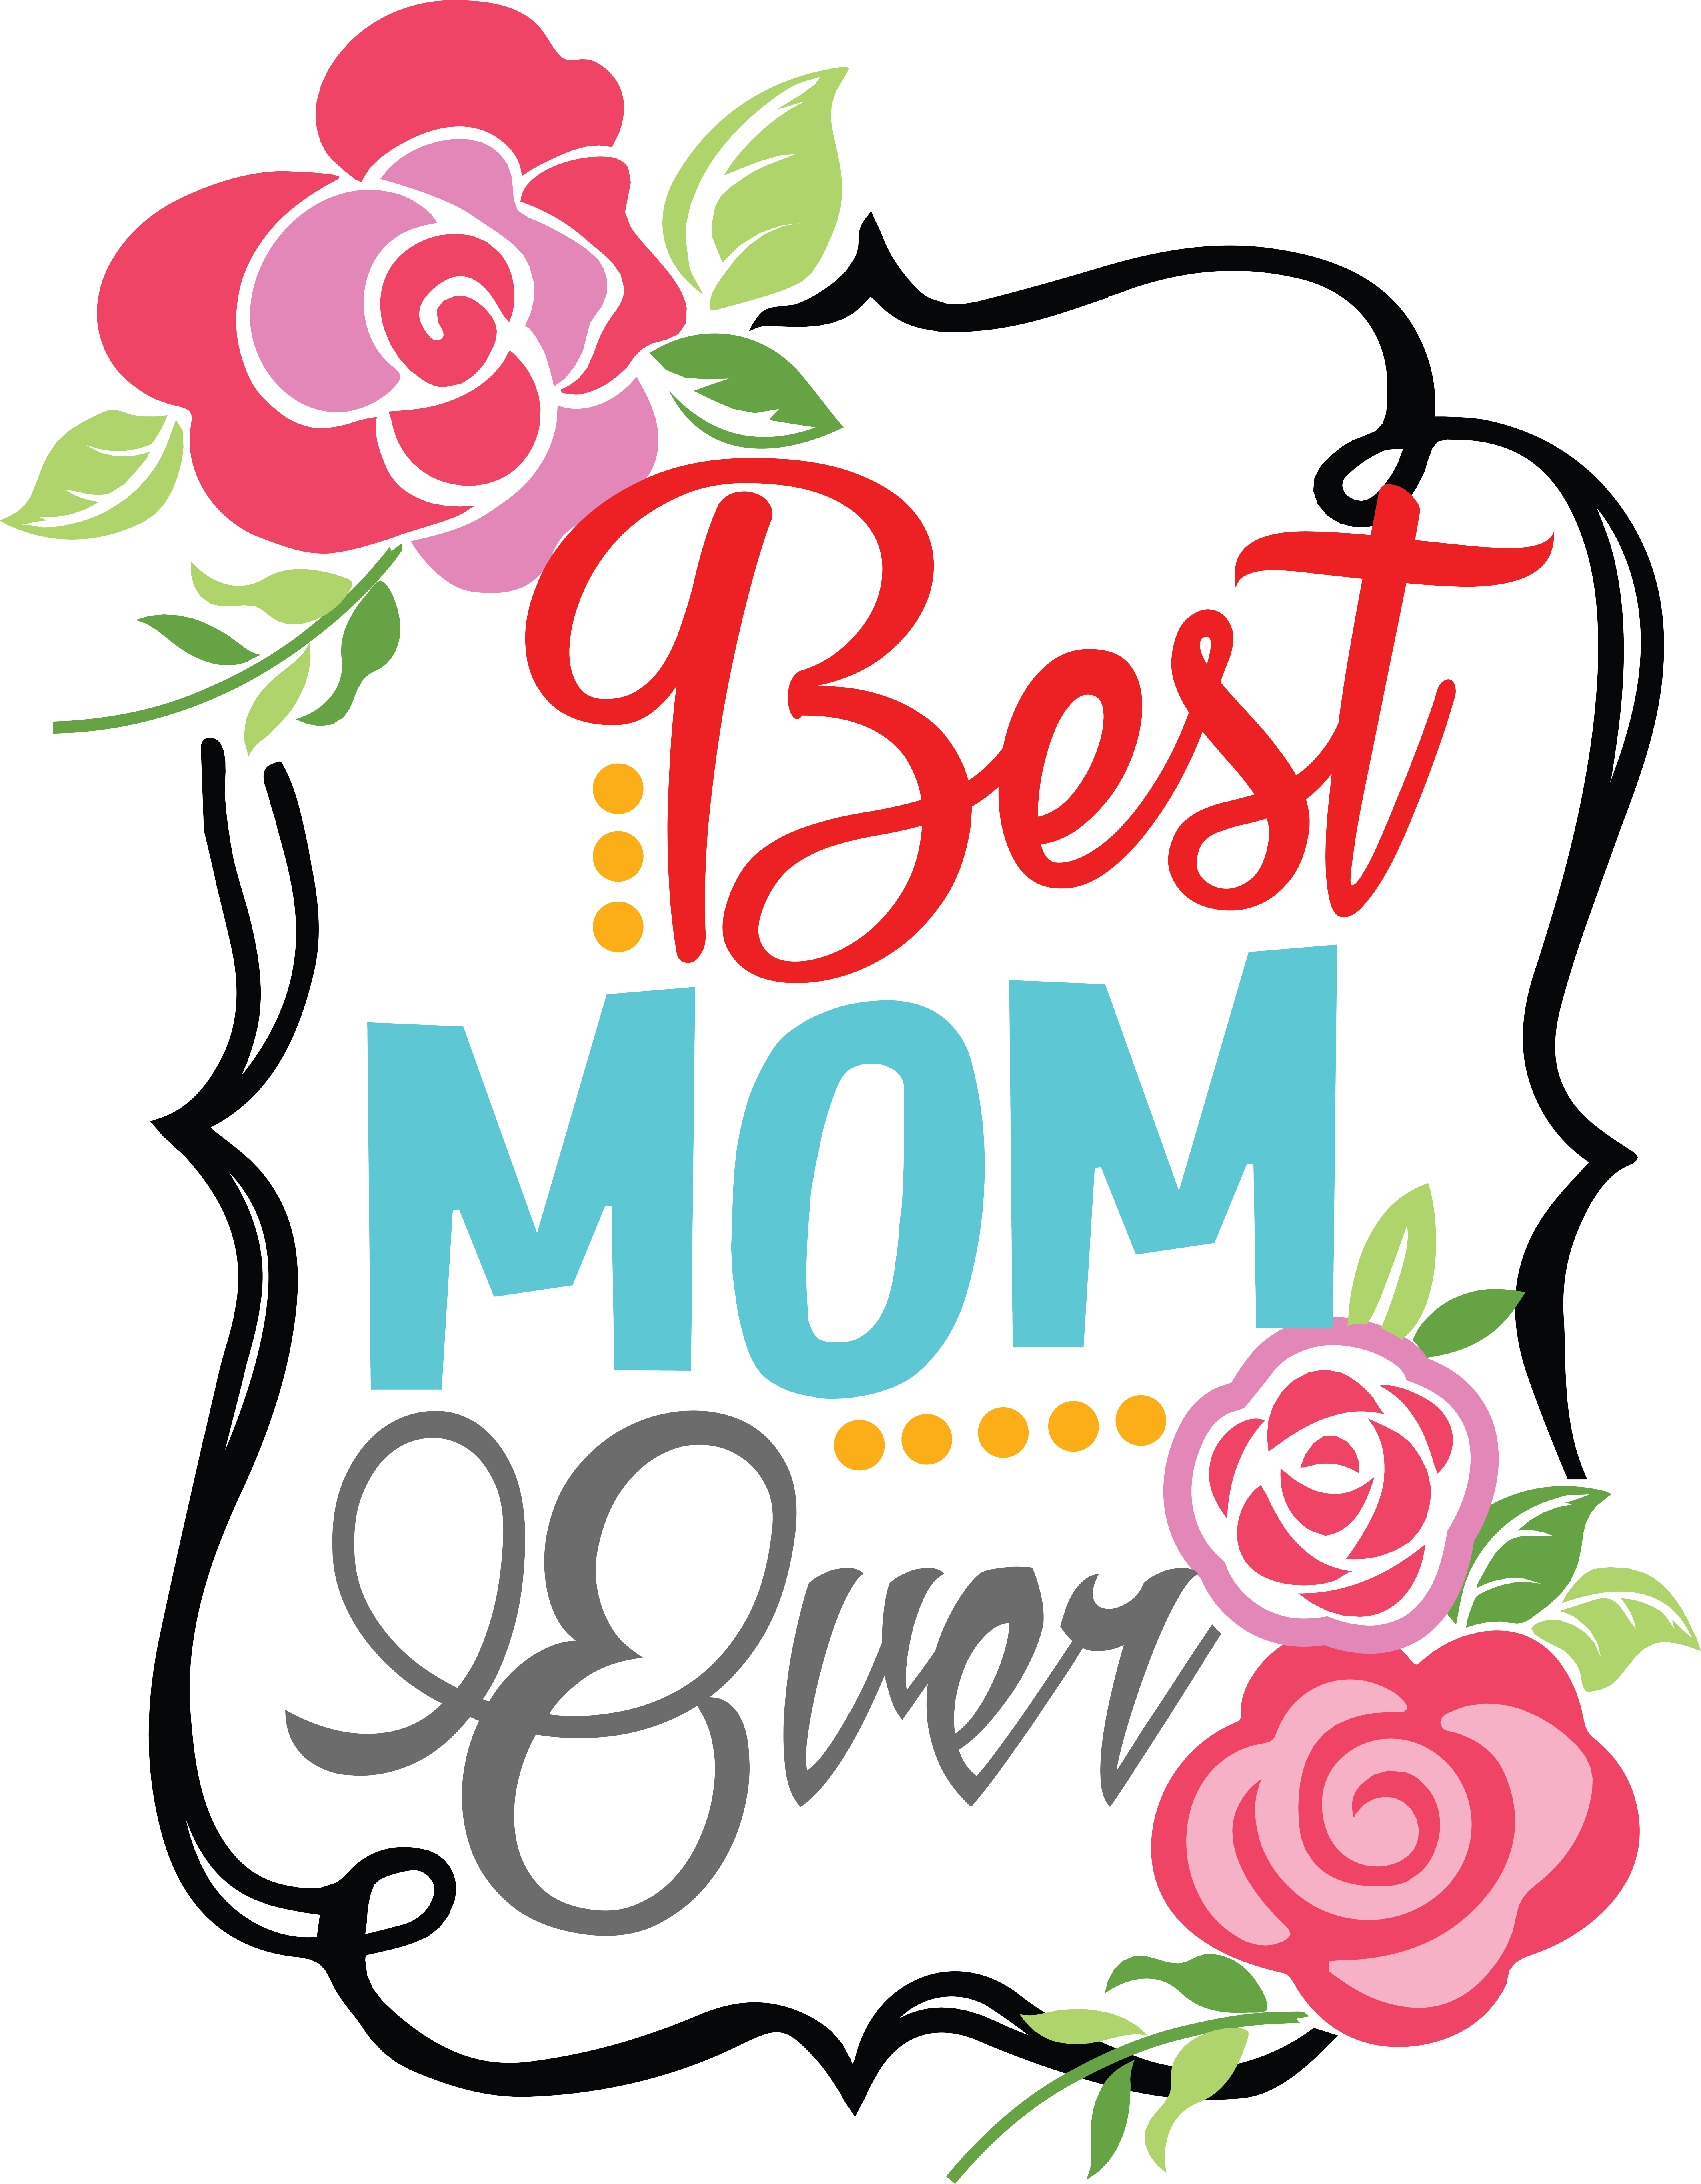 Best ever at getdrawings. Clipart mom word